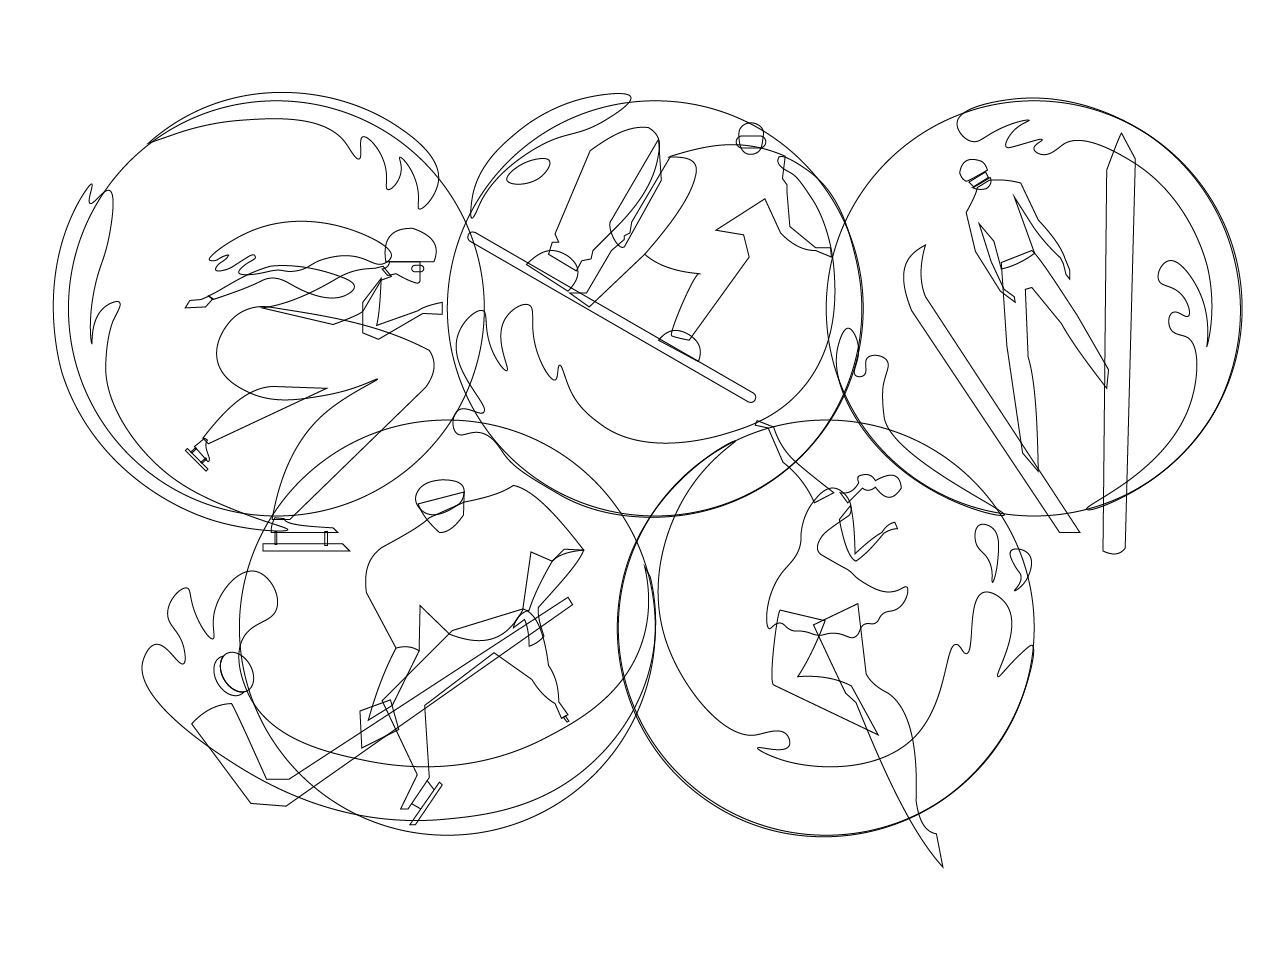 sketching olympic games illustration